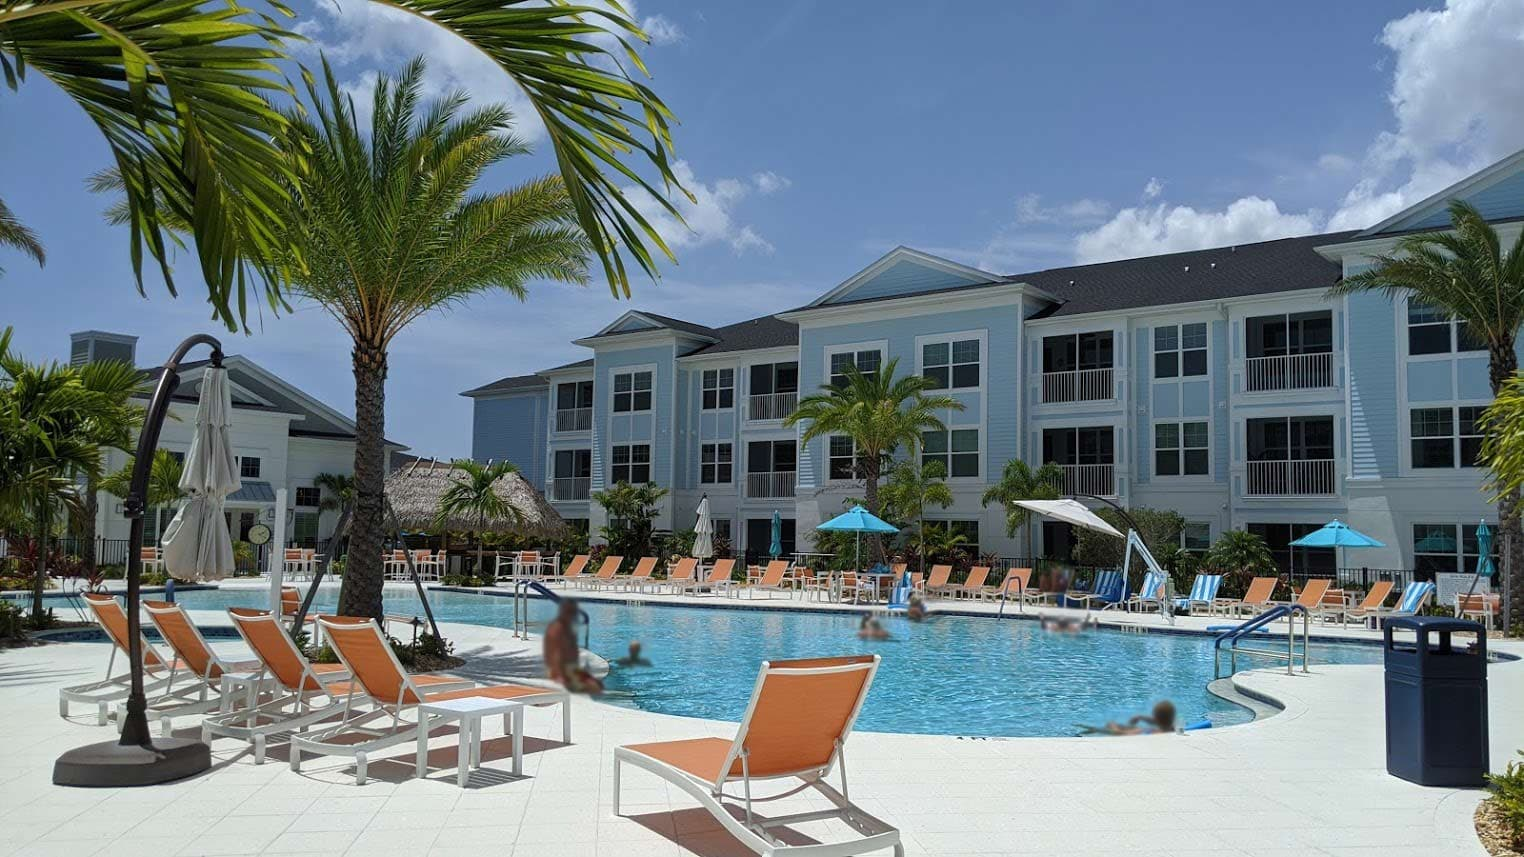 Floridian Club of Sarasota Pool Resort area with tiki bar